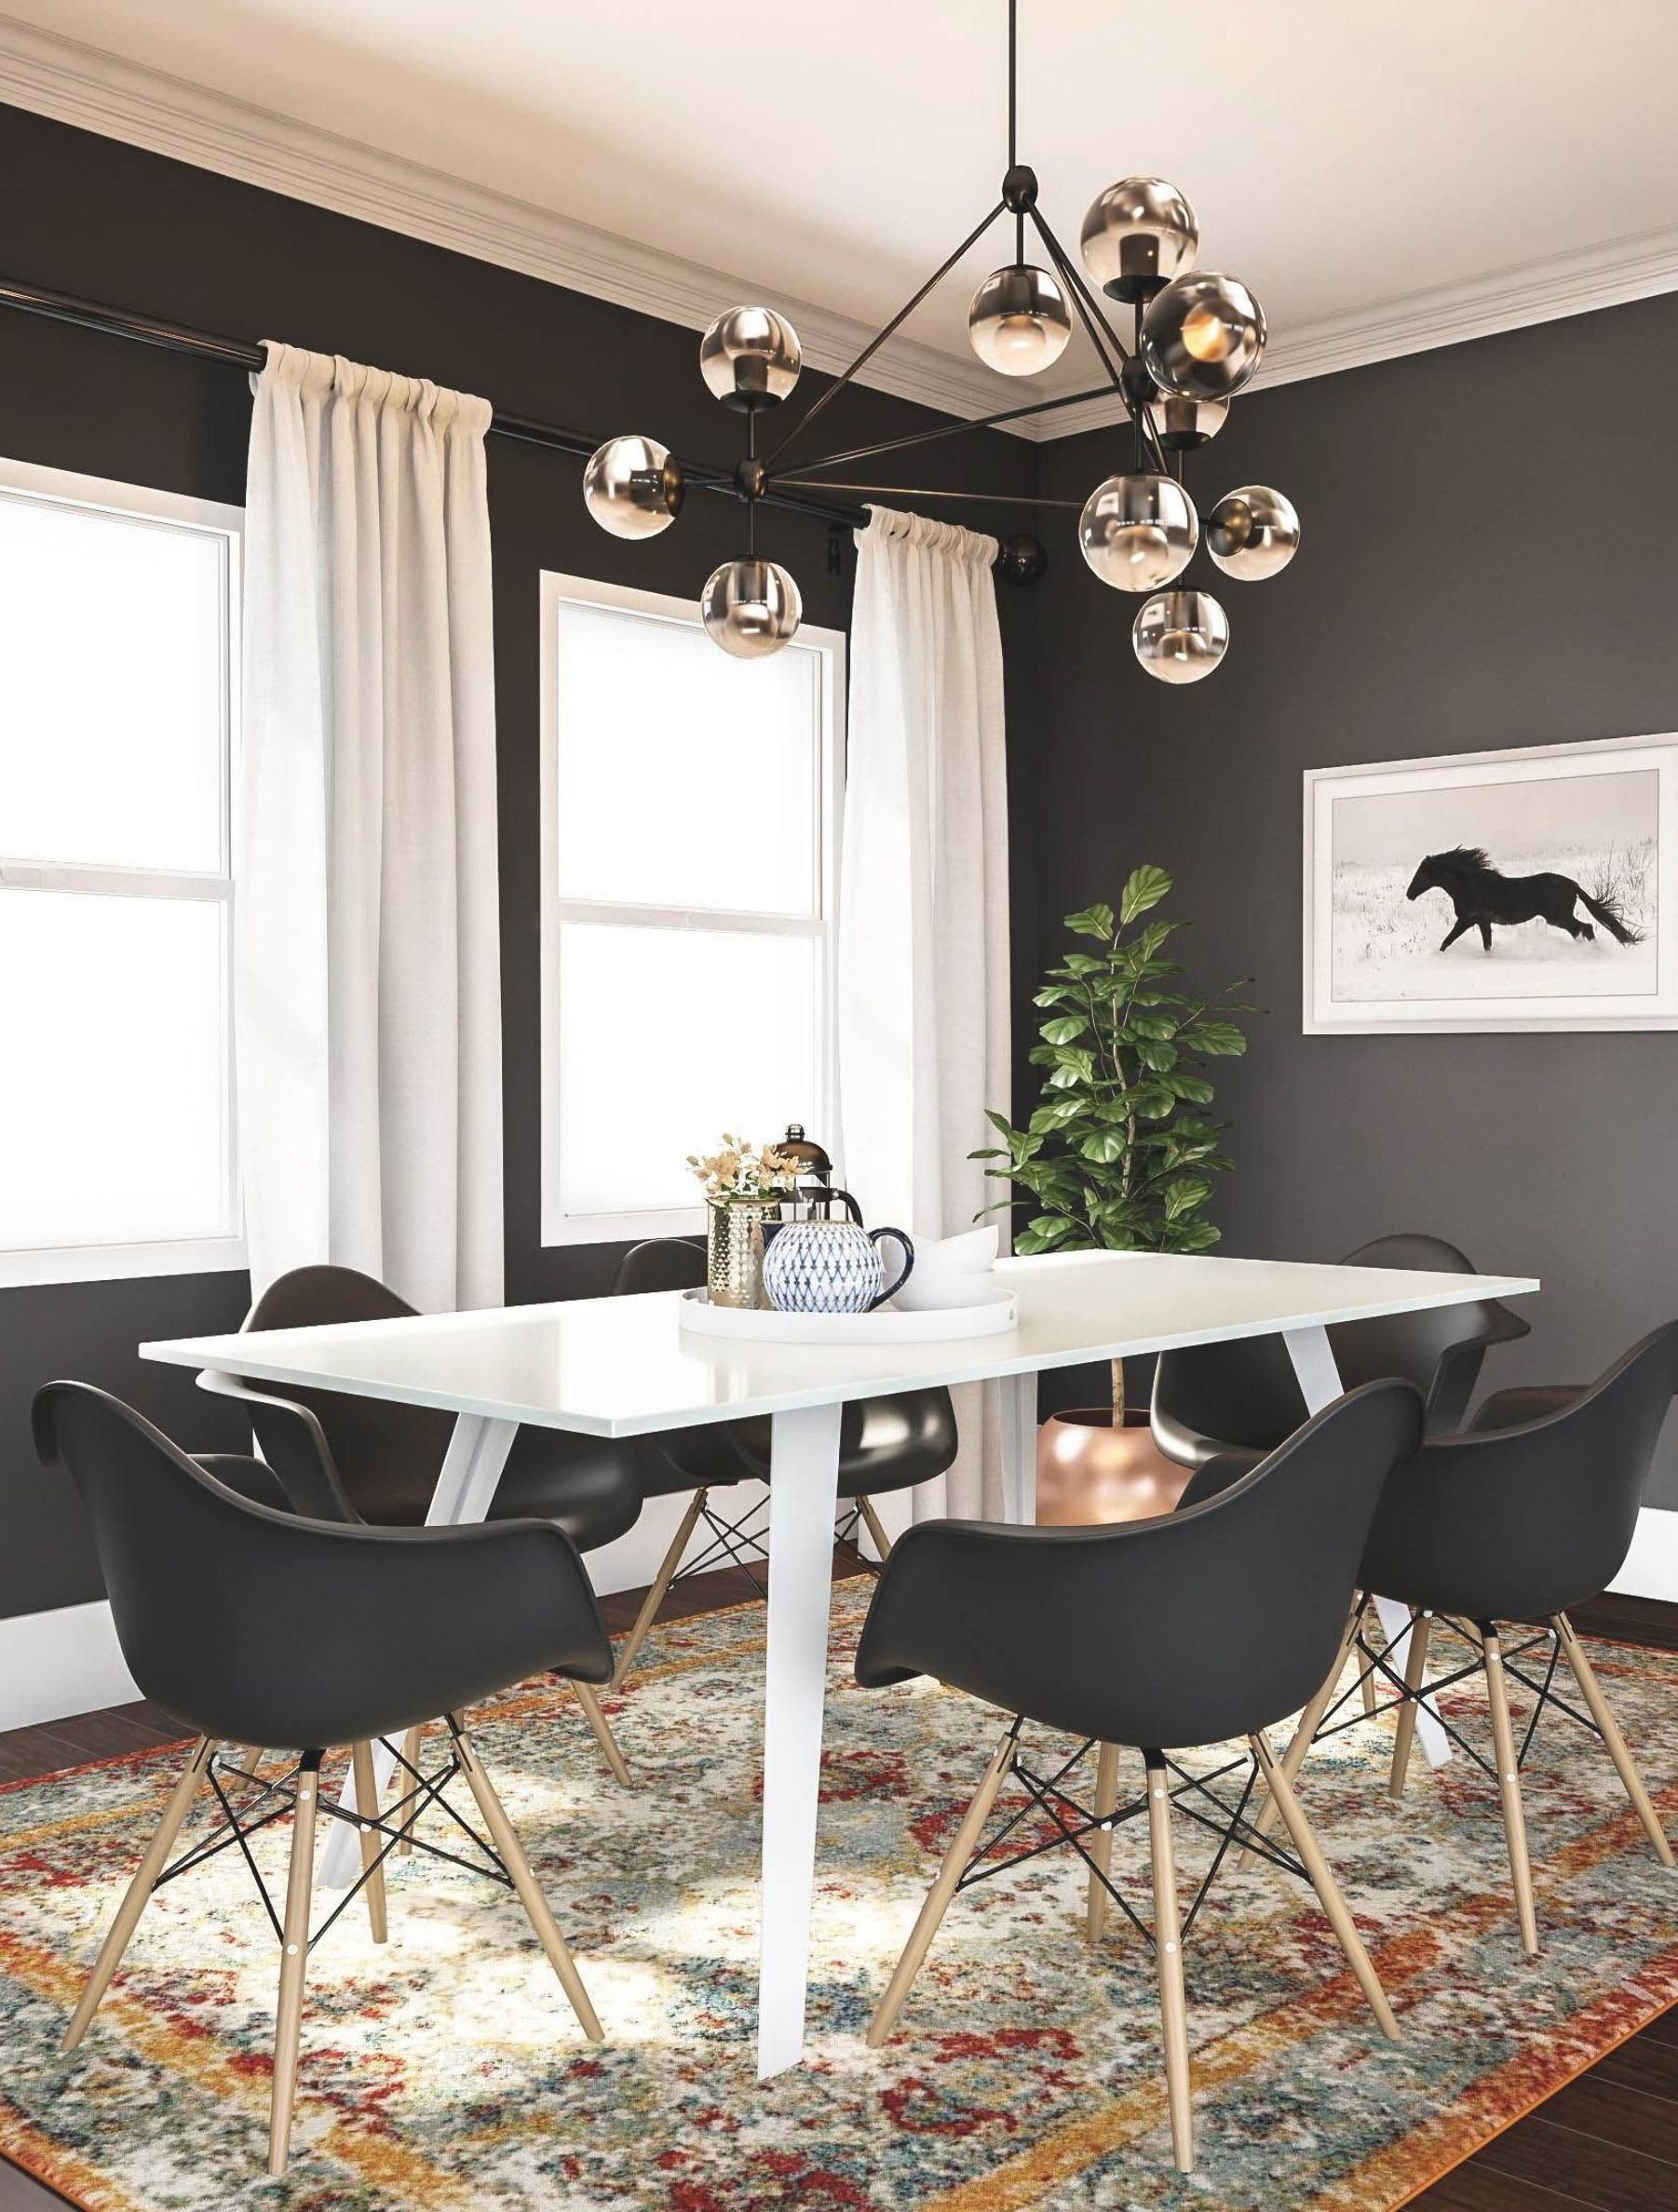 Graceful Houzz Dining Room Rug Ideas That Look Beautiful Black And White Dining Room Black Dining Room Dark Dining Room